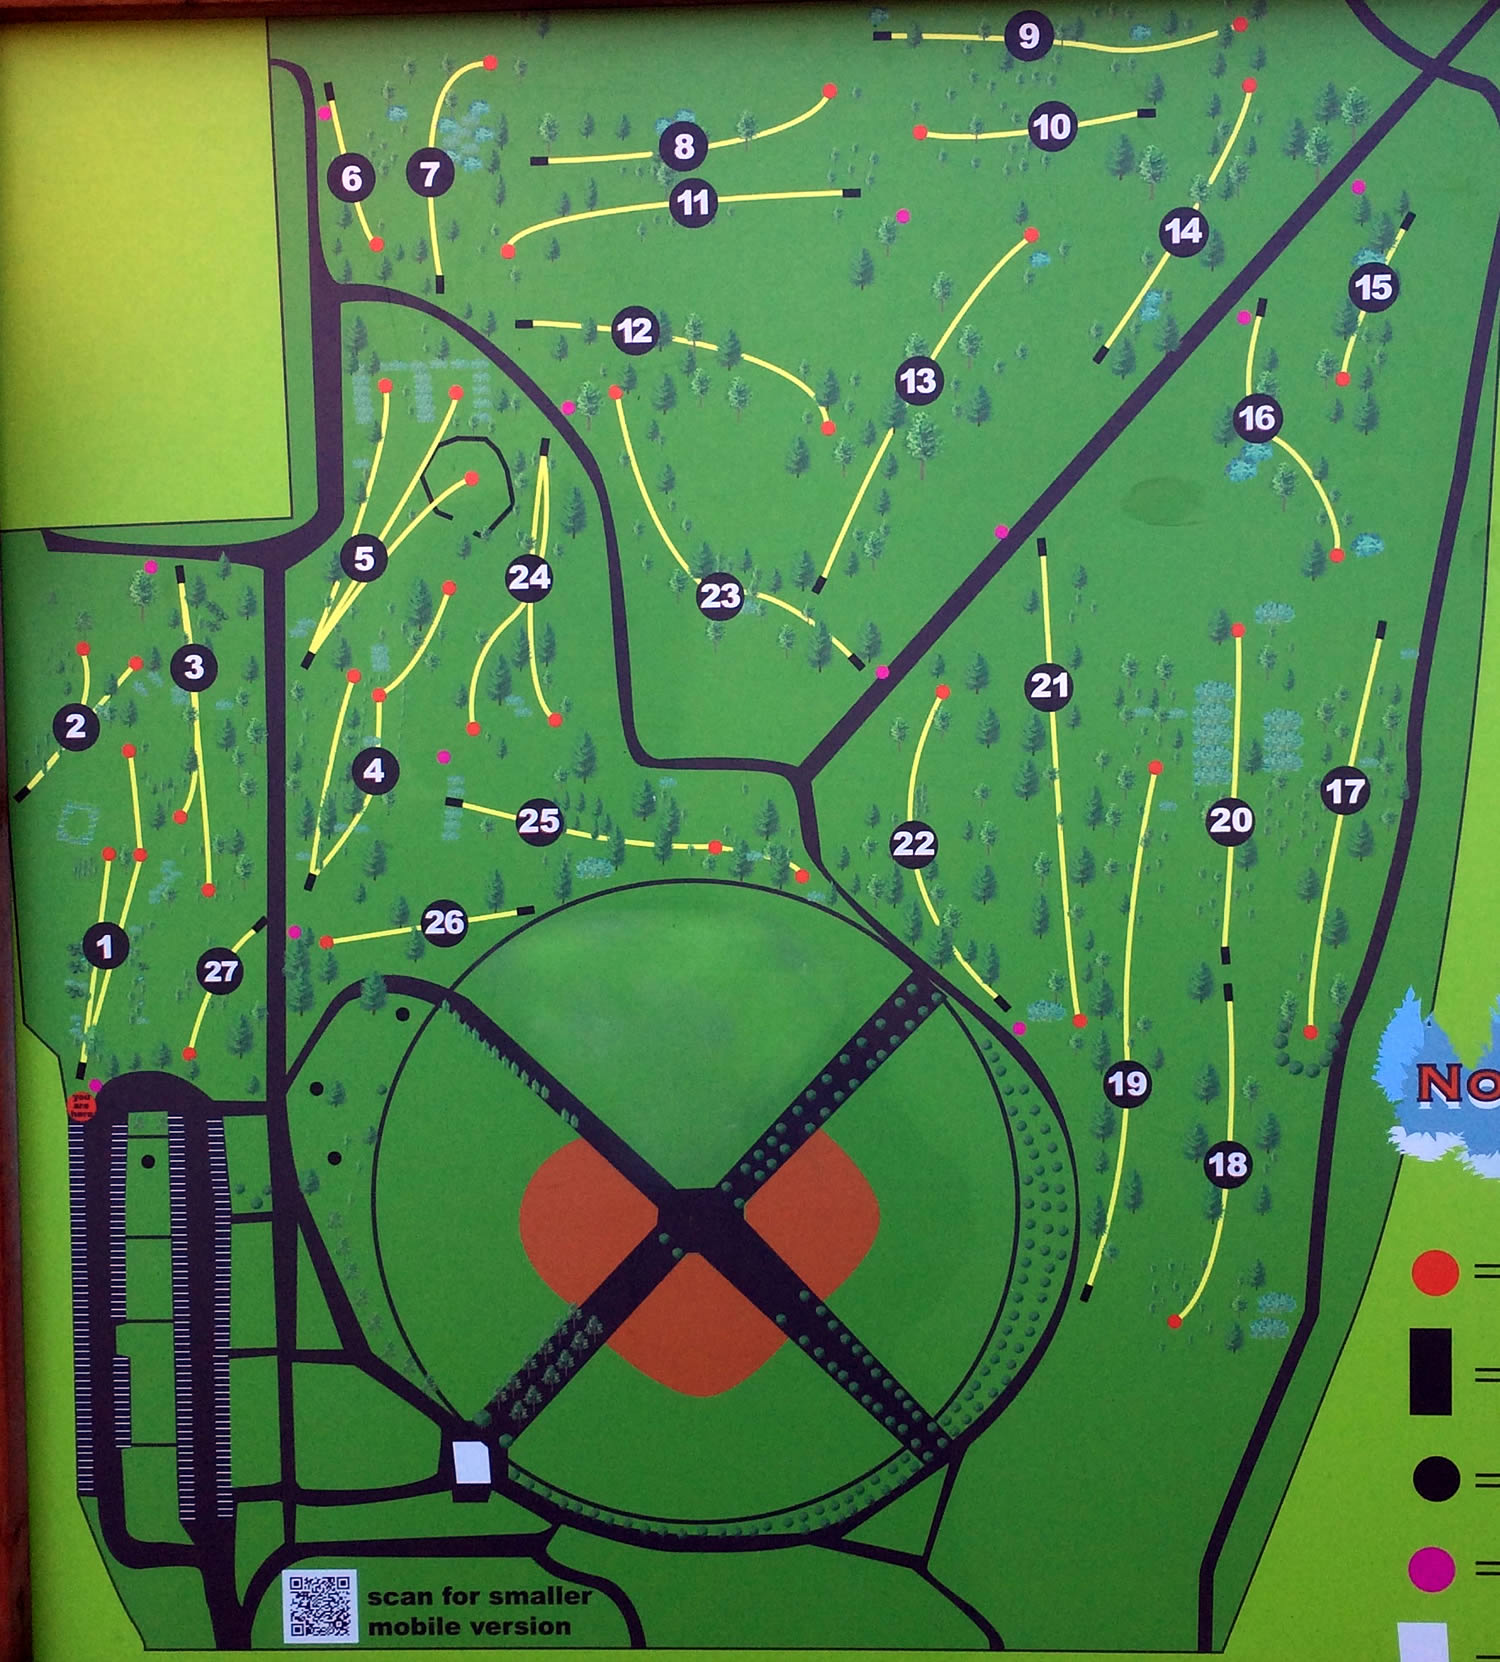 Seatac DGC in Seatac, WA - Disc Golf Course Review